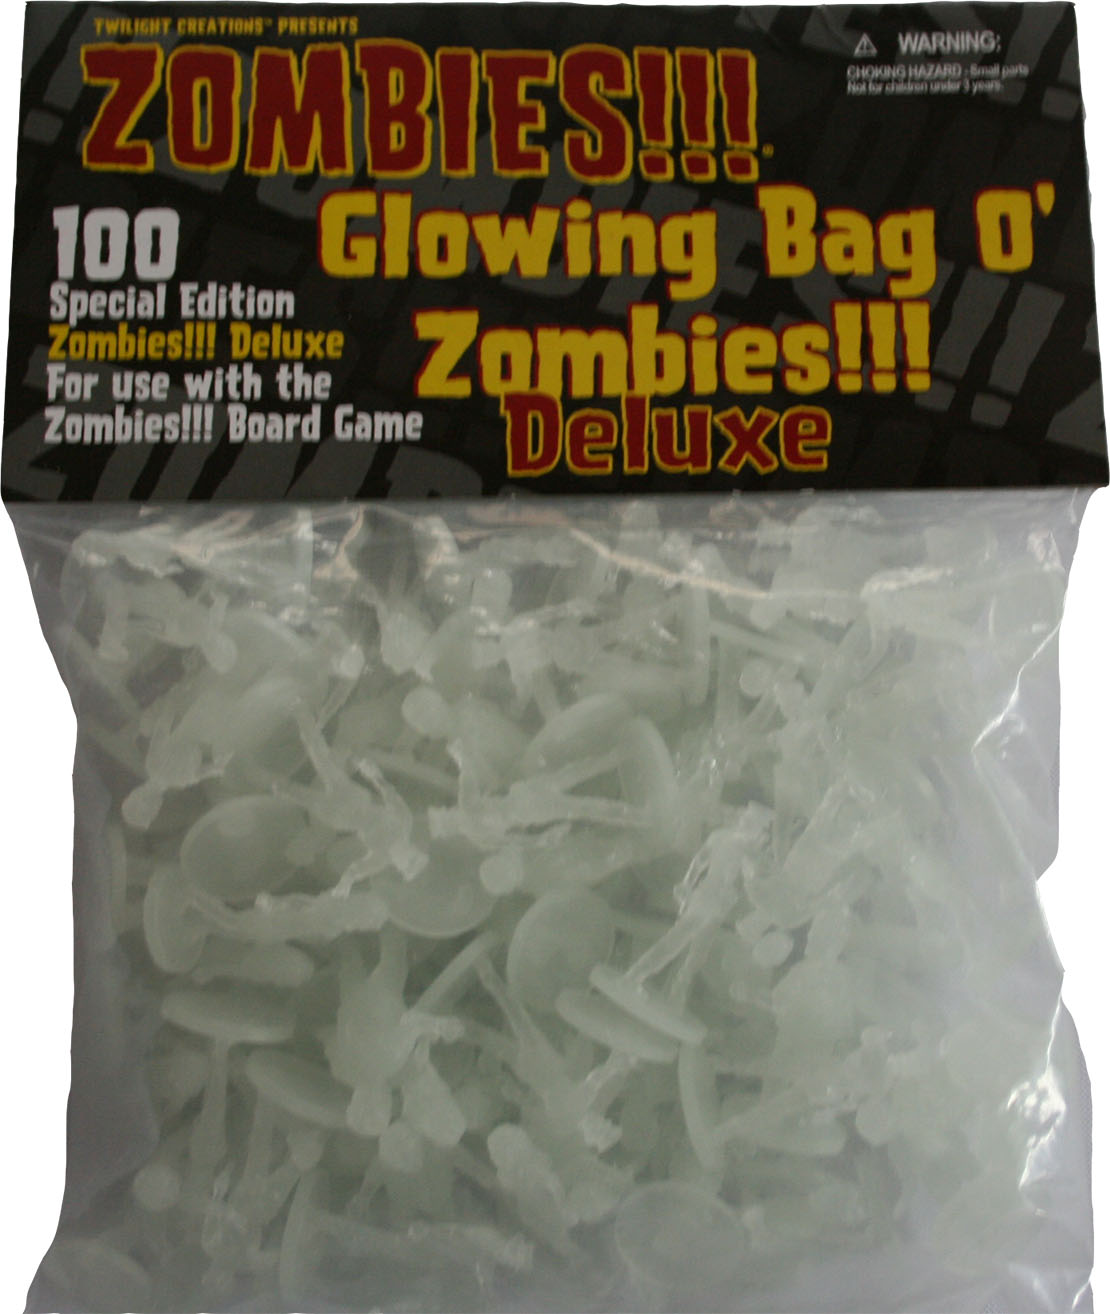 Zombies!!!: Bag O Zombies - Deluxe Glowing Box Front